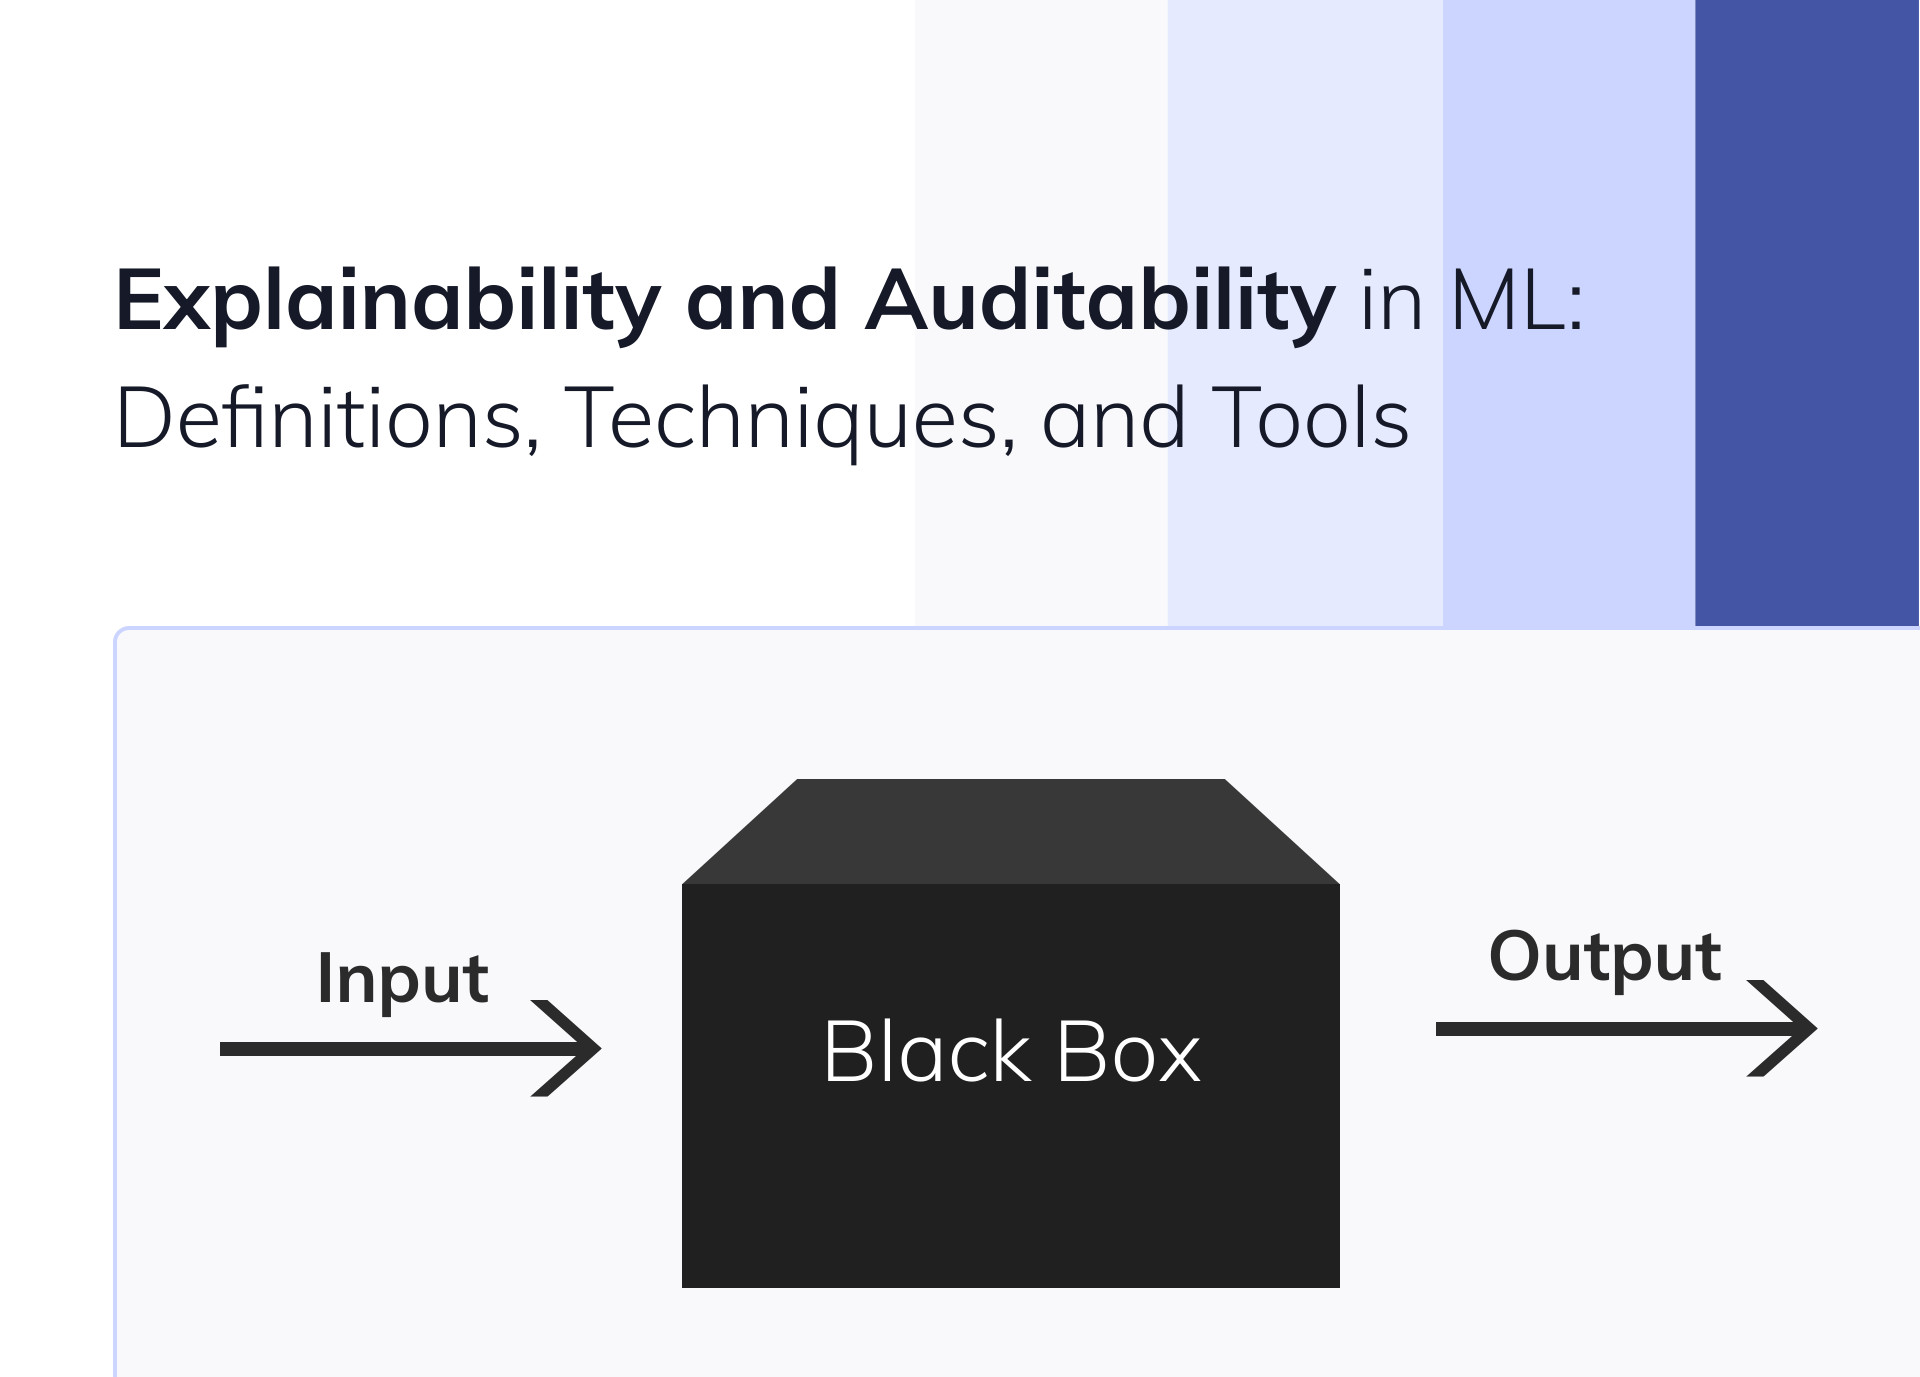 Explainability and Auditability in ML: Definitions, Techniques, and Tools